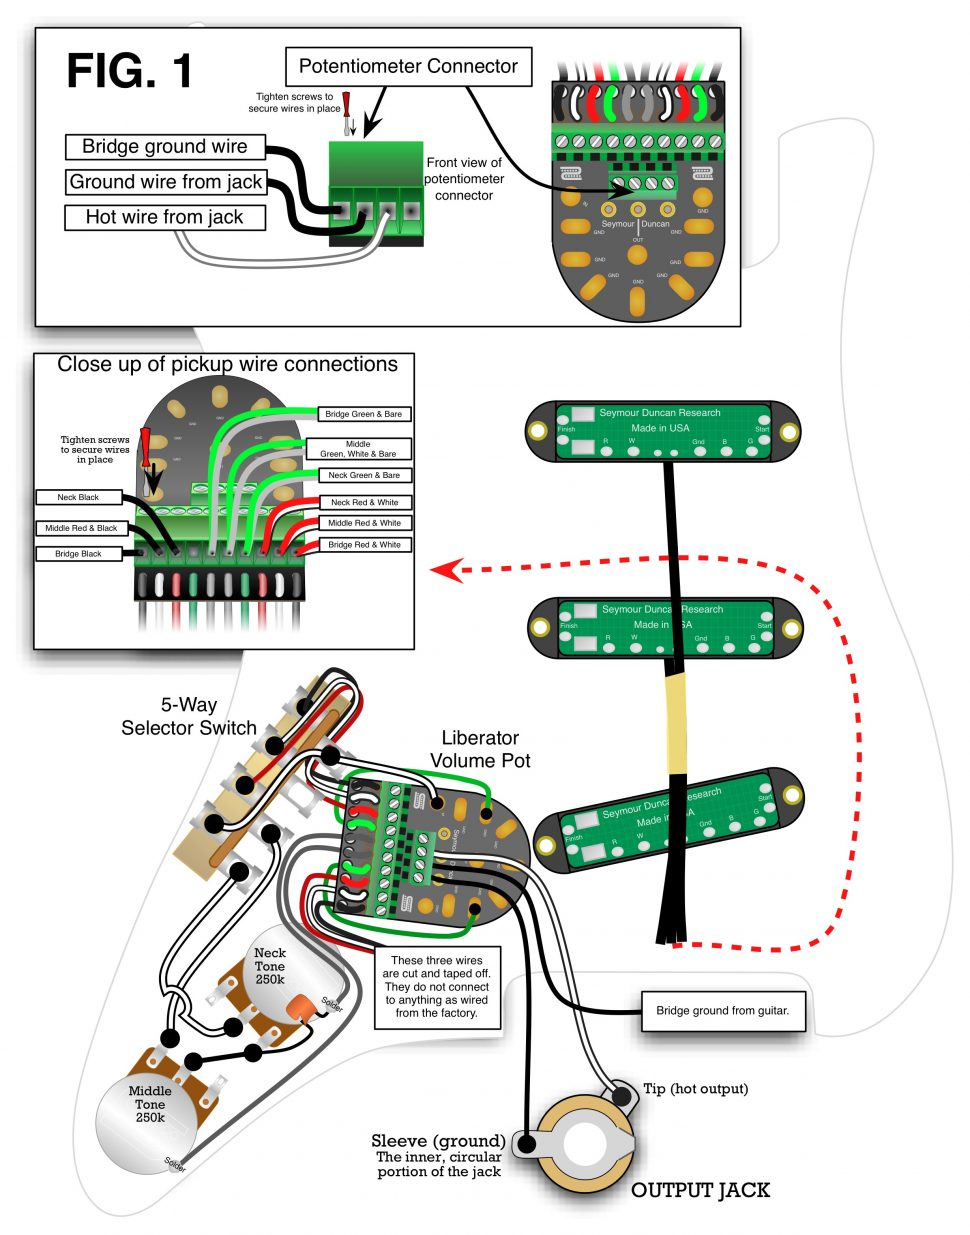 emg hz wiring diagrams pollak 6 way diagram wires drawing at getdrawings com free for personal use 970x1235 hsh pickup fender fat strat gooddy org